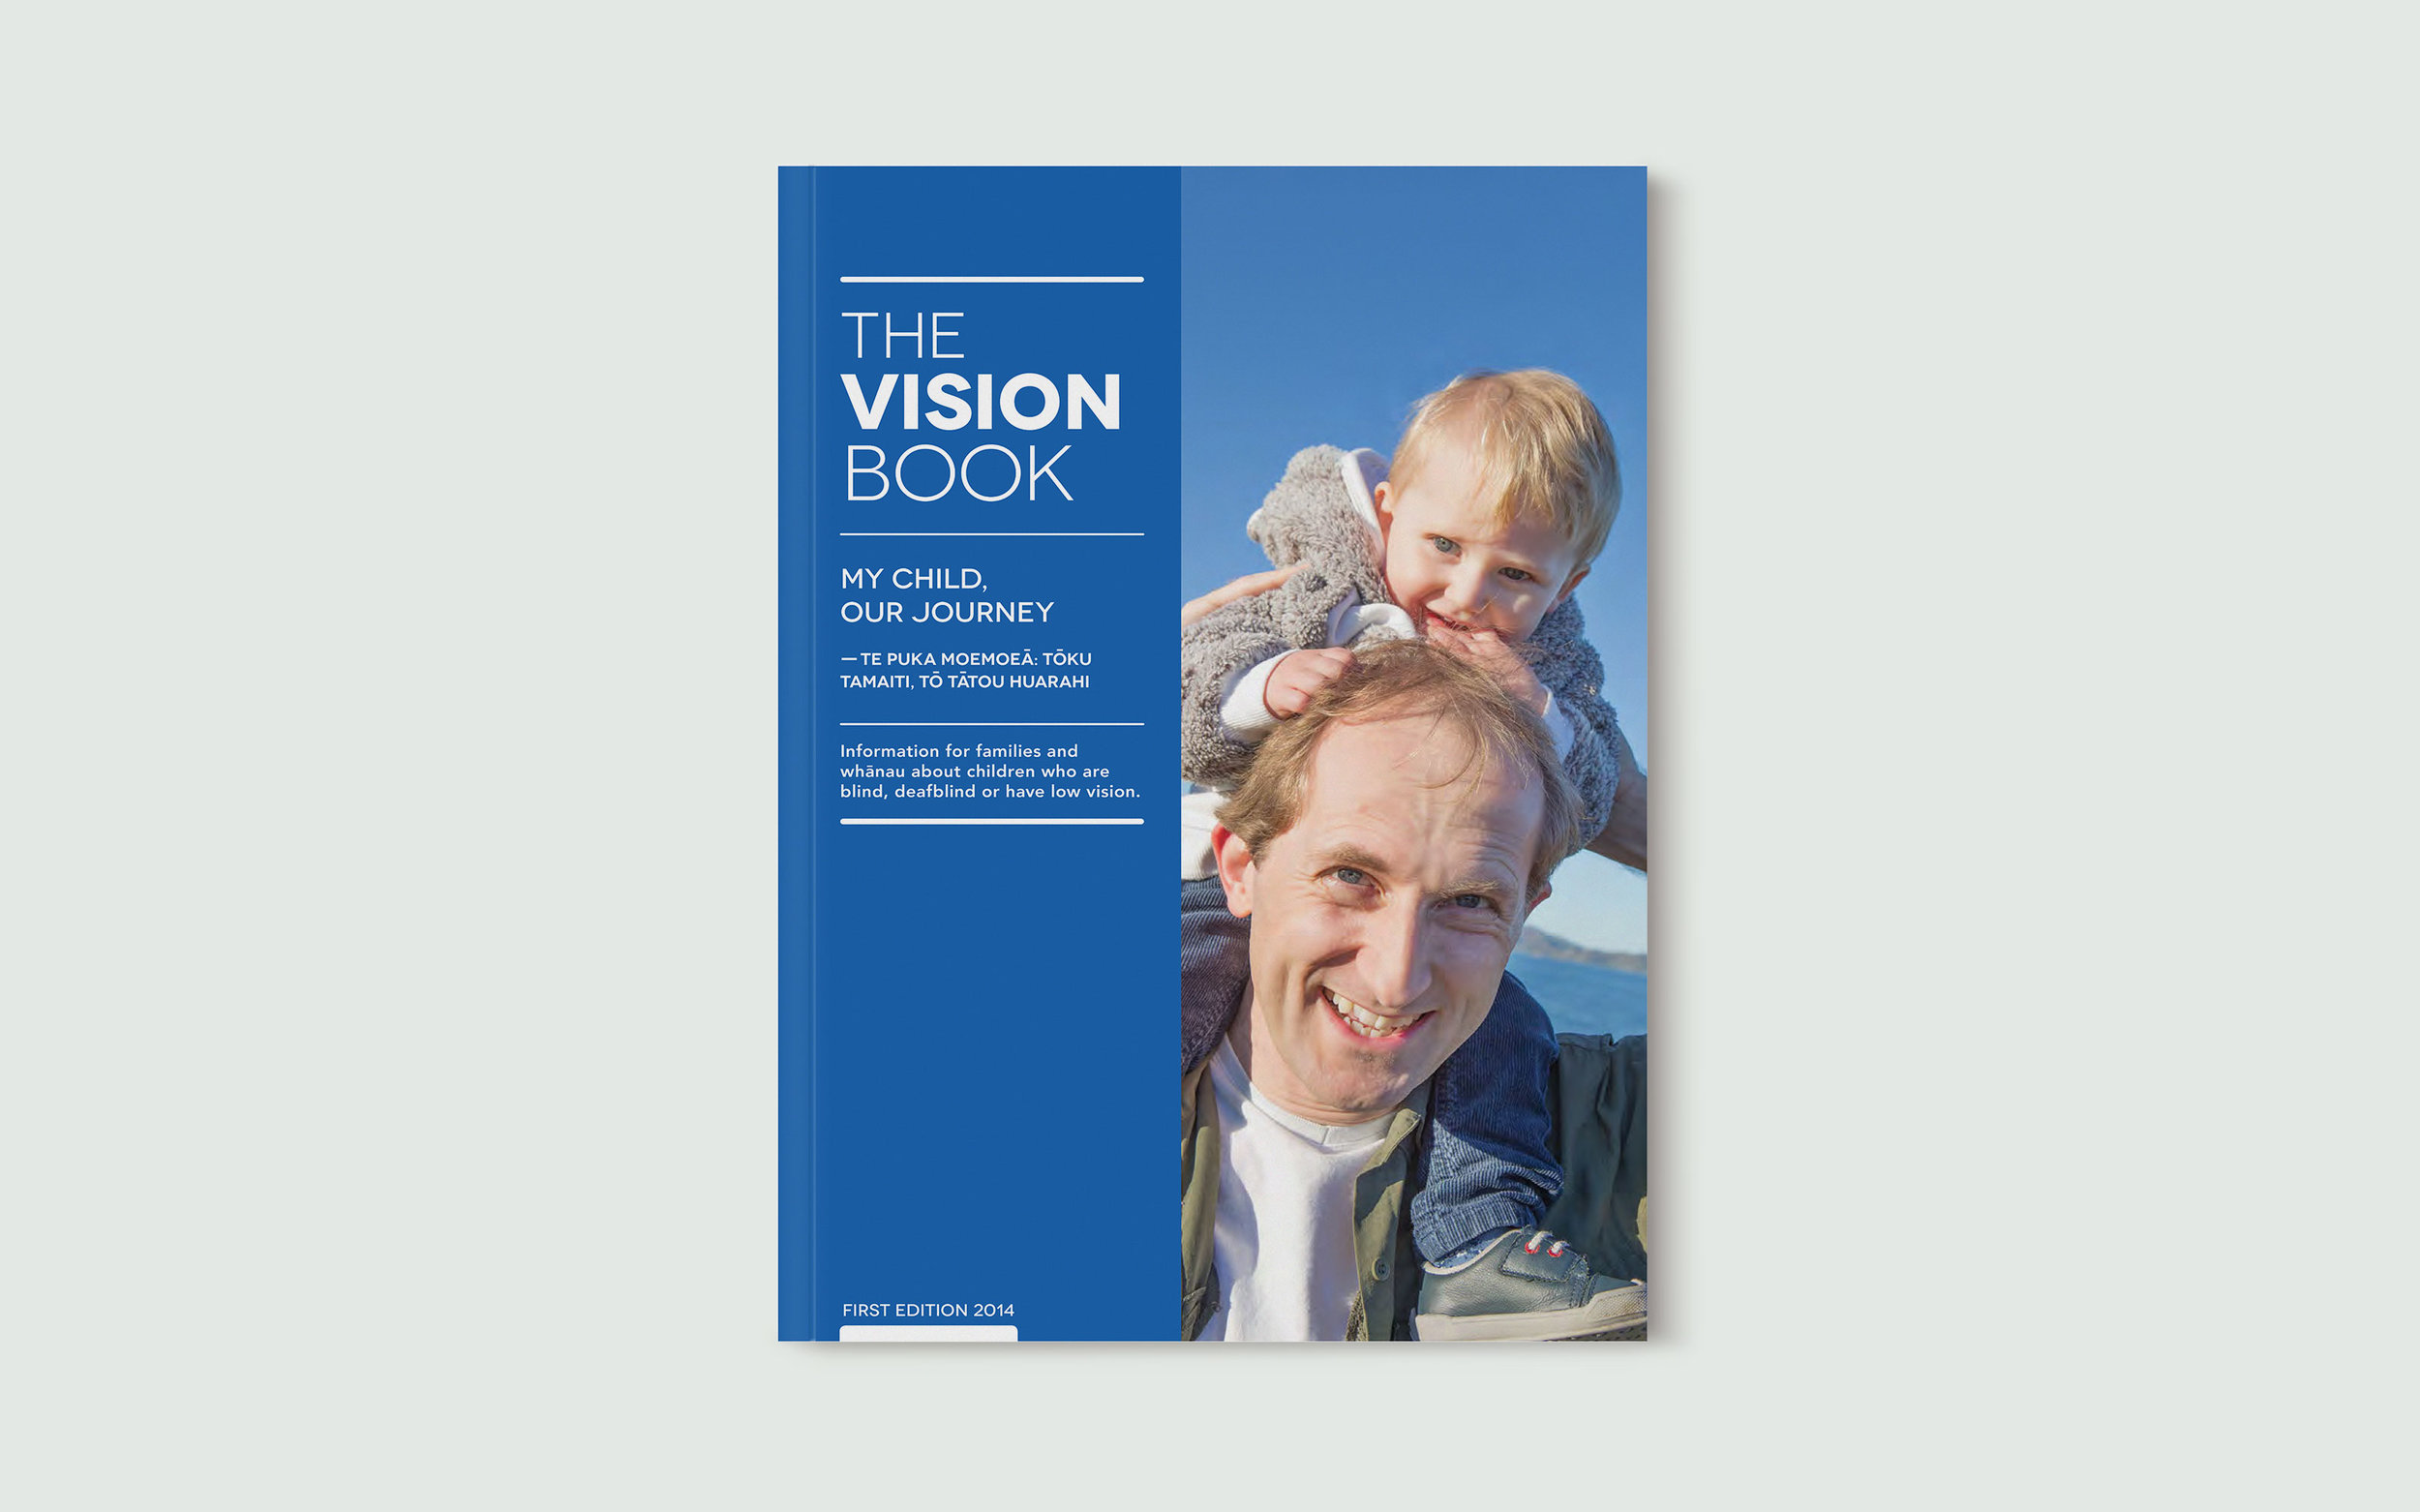 EDUCATION-The-Vision-Book-for-families-green-tint.jpg